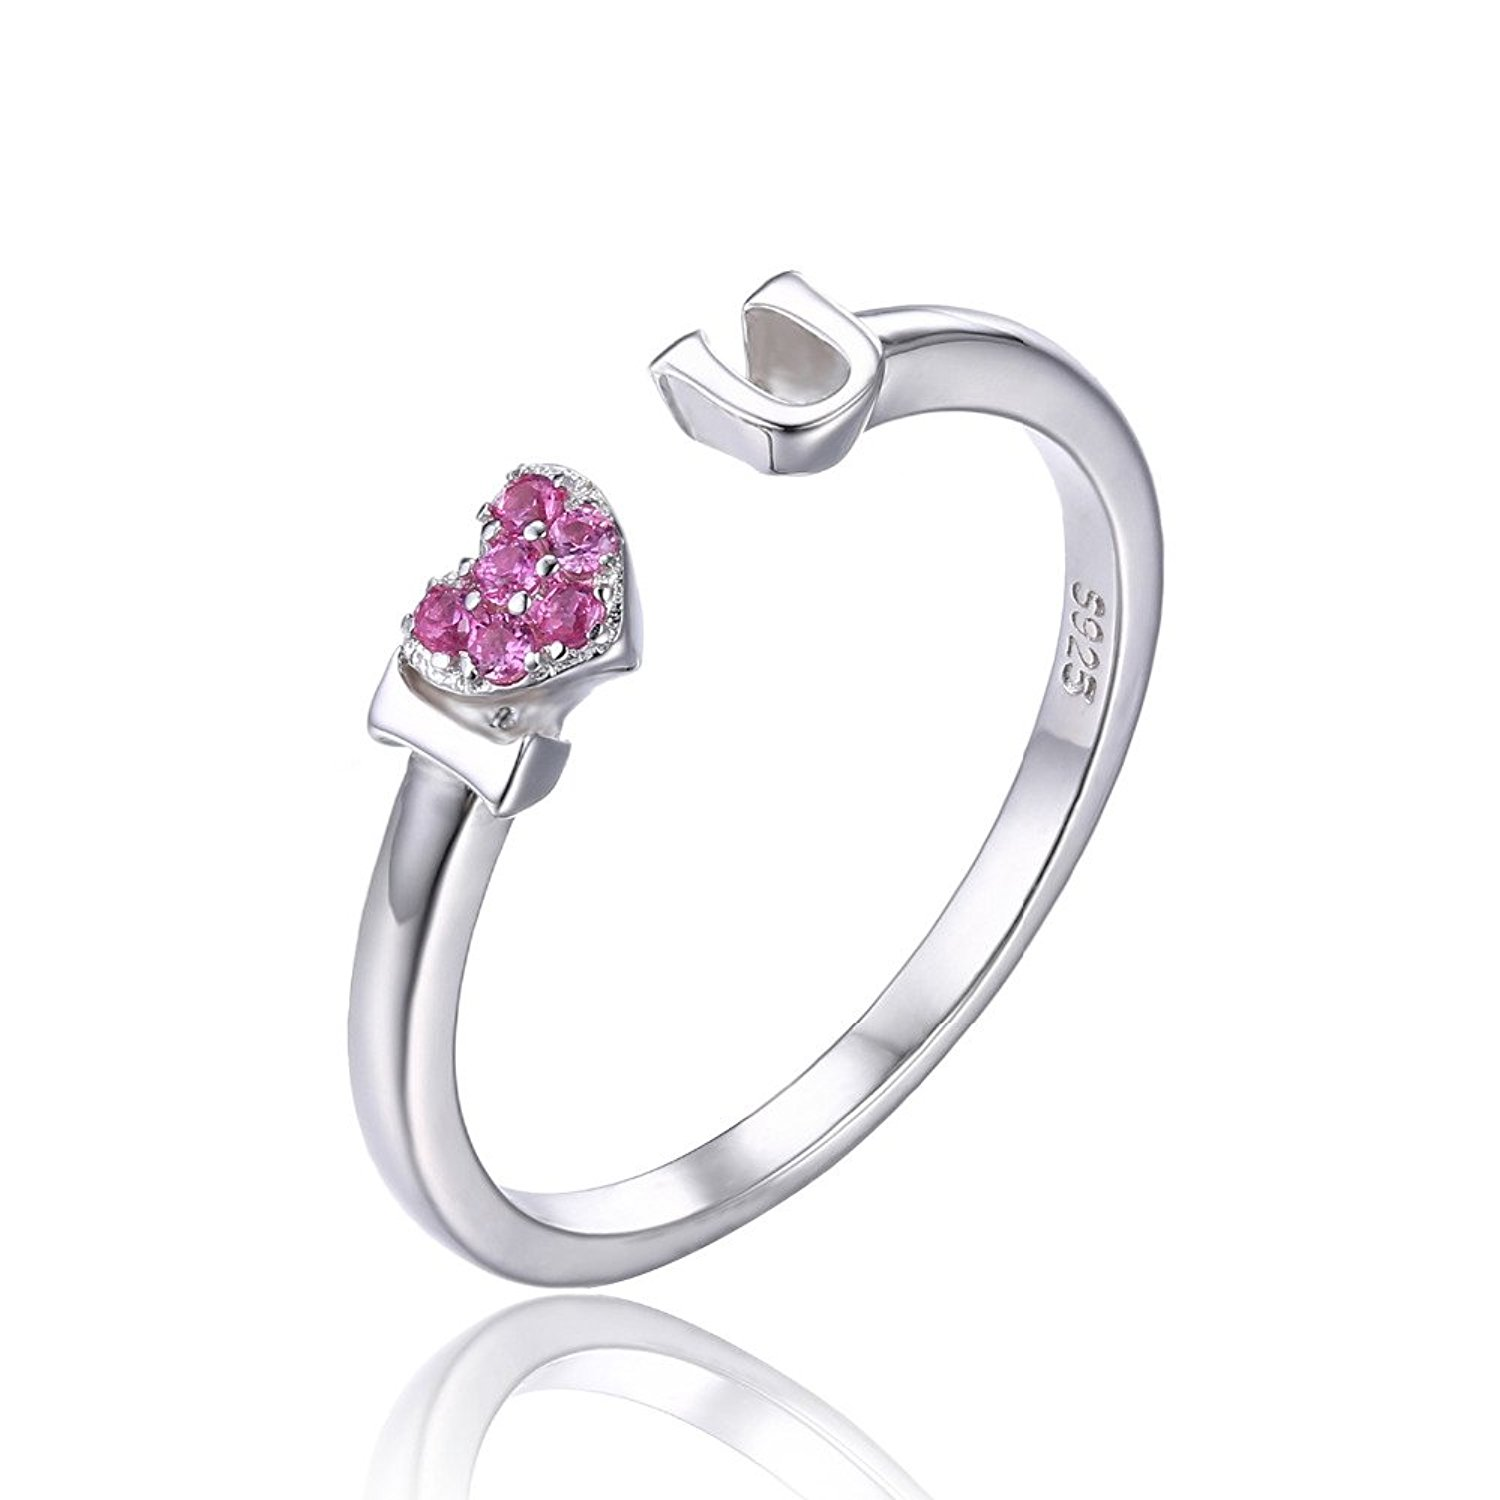 PSRINGS Rings I Love You Created Pink Sapphire Heart Wrap Stackable 925 Sterling Silver Heart